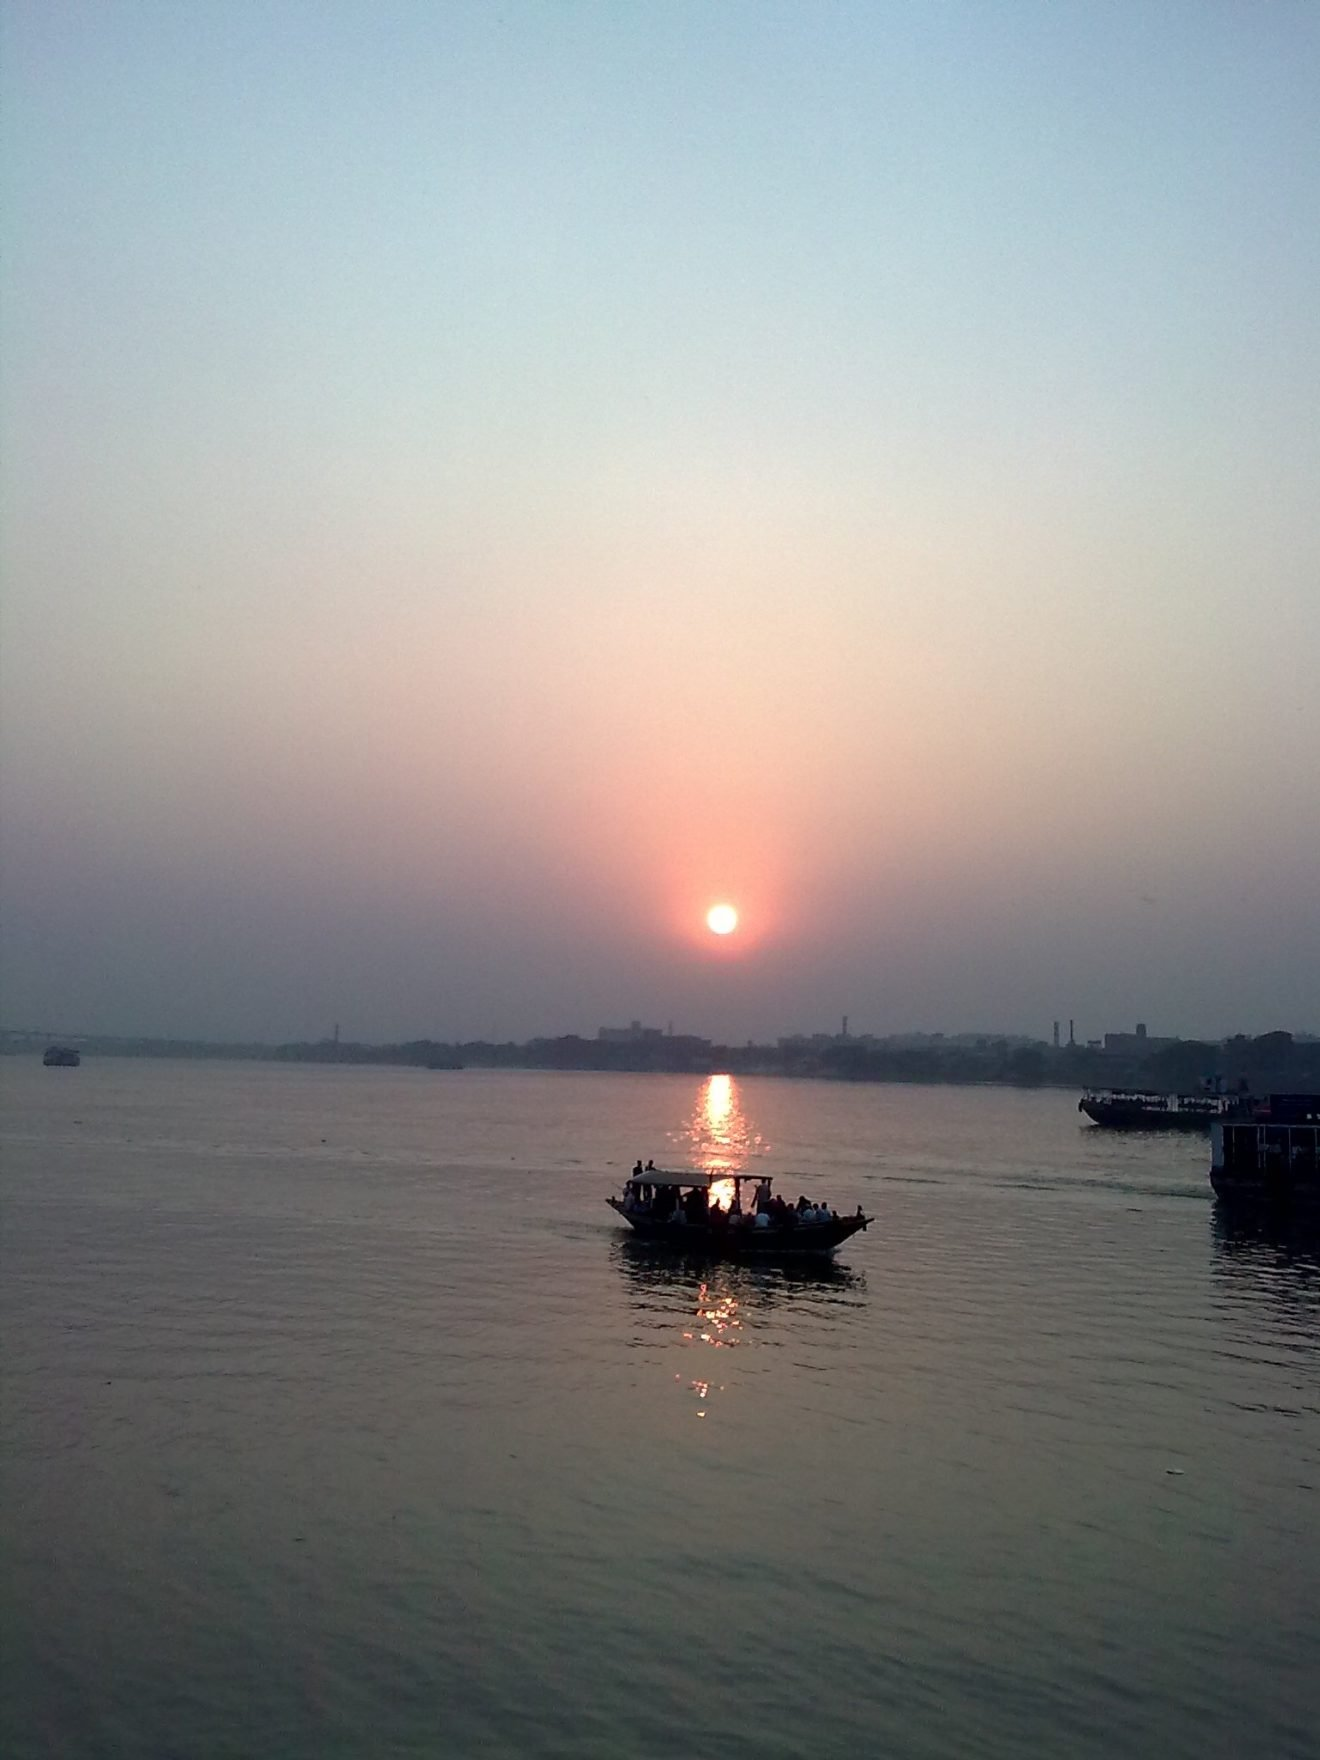 This photograph is an evening-time long shot of the Hooghly River from the river bank on the Kolkata side. The photograph shows a large expanse of the river. The backdrop shows a golden yellow setting sun and a blue sky tinged with orange light in the horizon. The river waters seem absolutely calm and a large passenger boat with many people on board can be seen right in the line of the sun's reflection on the water. More vessels can be seen towards the right edge of the photograph and in the distant background. The river bank on the far side is a hazy line of trees and a few industrial structures. The overall sense is one of serenity. The setting sun can be a symbol of renewal as much as a rising one. Photo credit: Pawan Dhall